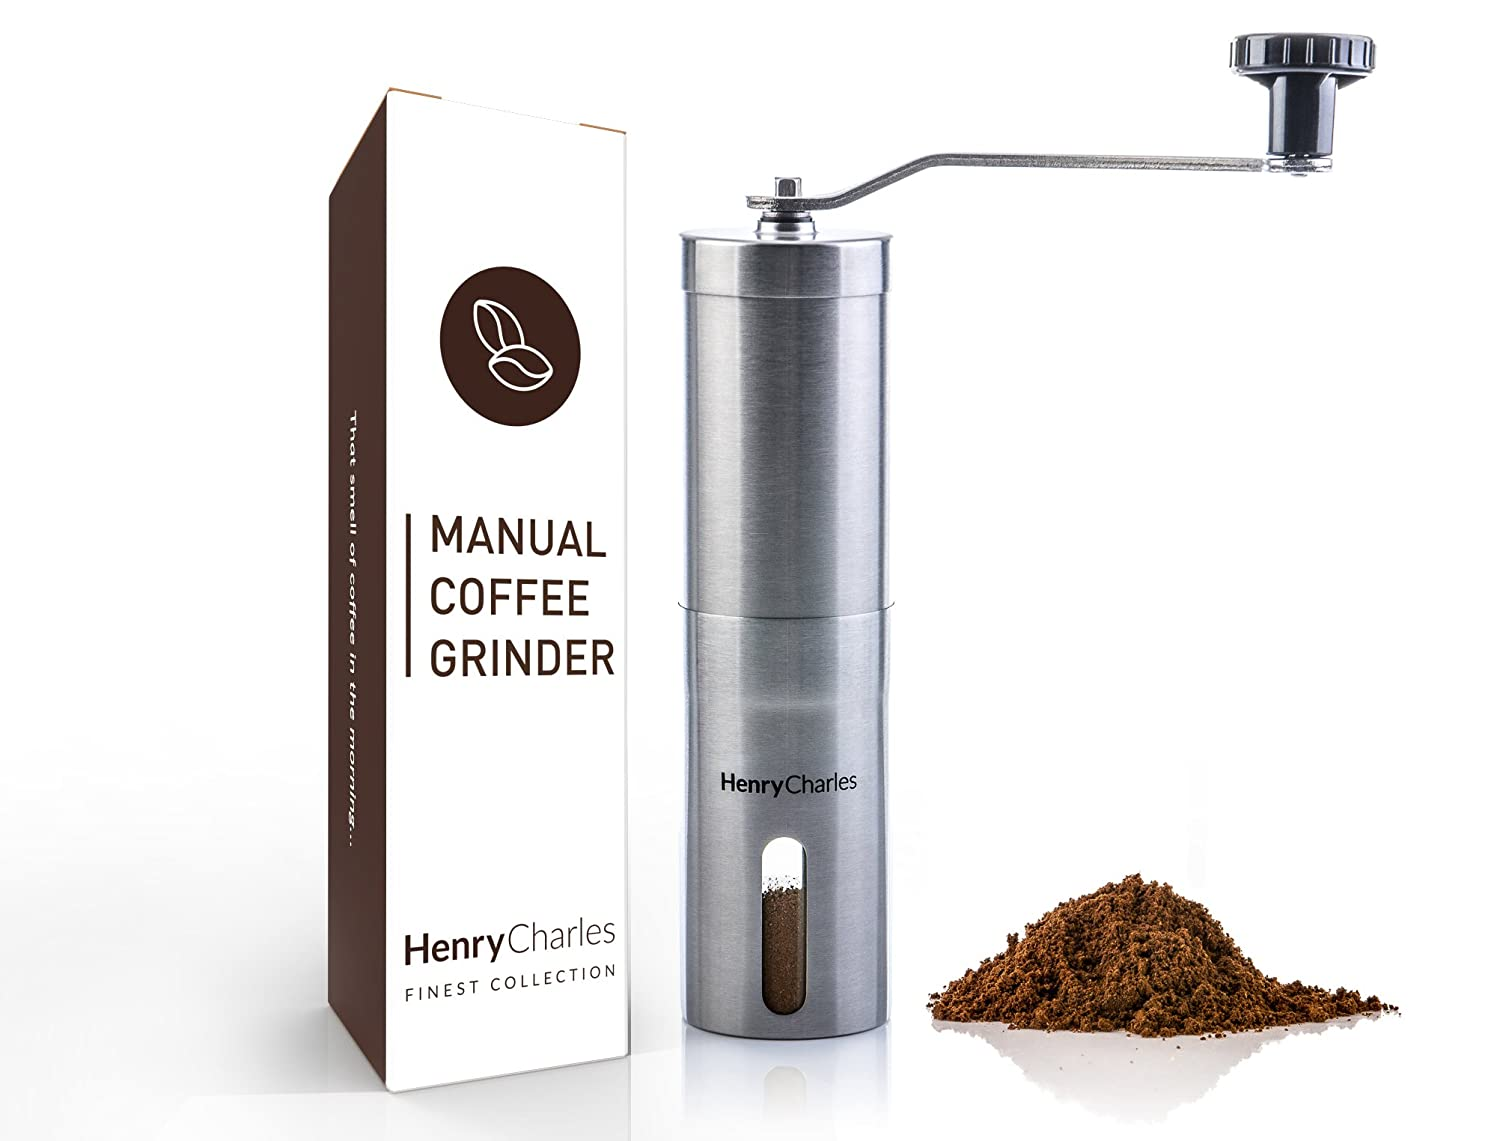 Henry Charles Manual Coffee Grinder, Adjustable Conical Ceramic Burr, Brushed Stainless Steel Oliver James 4335457081